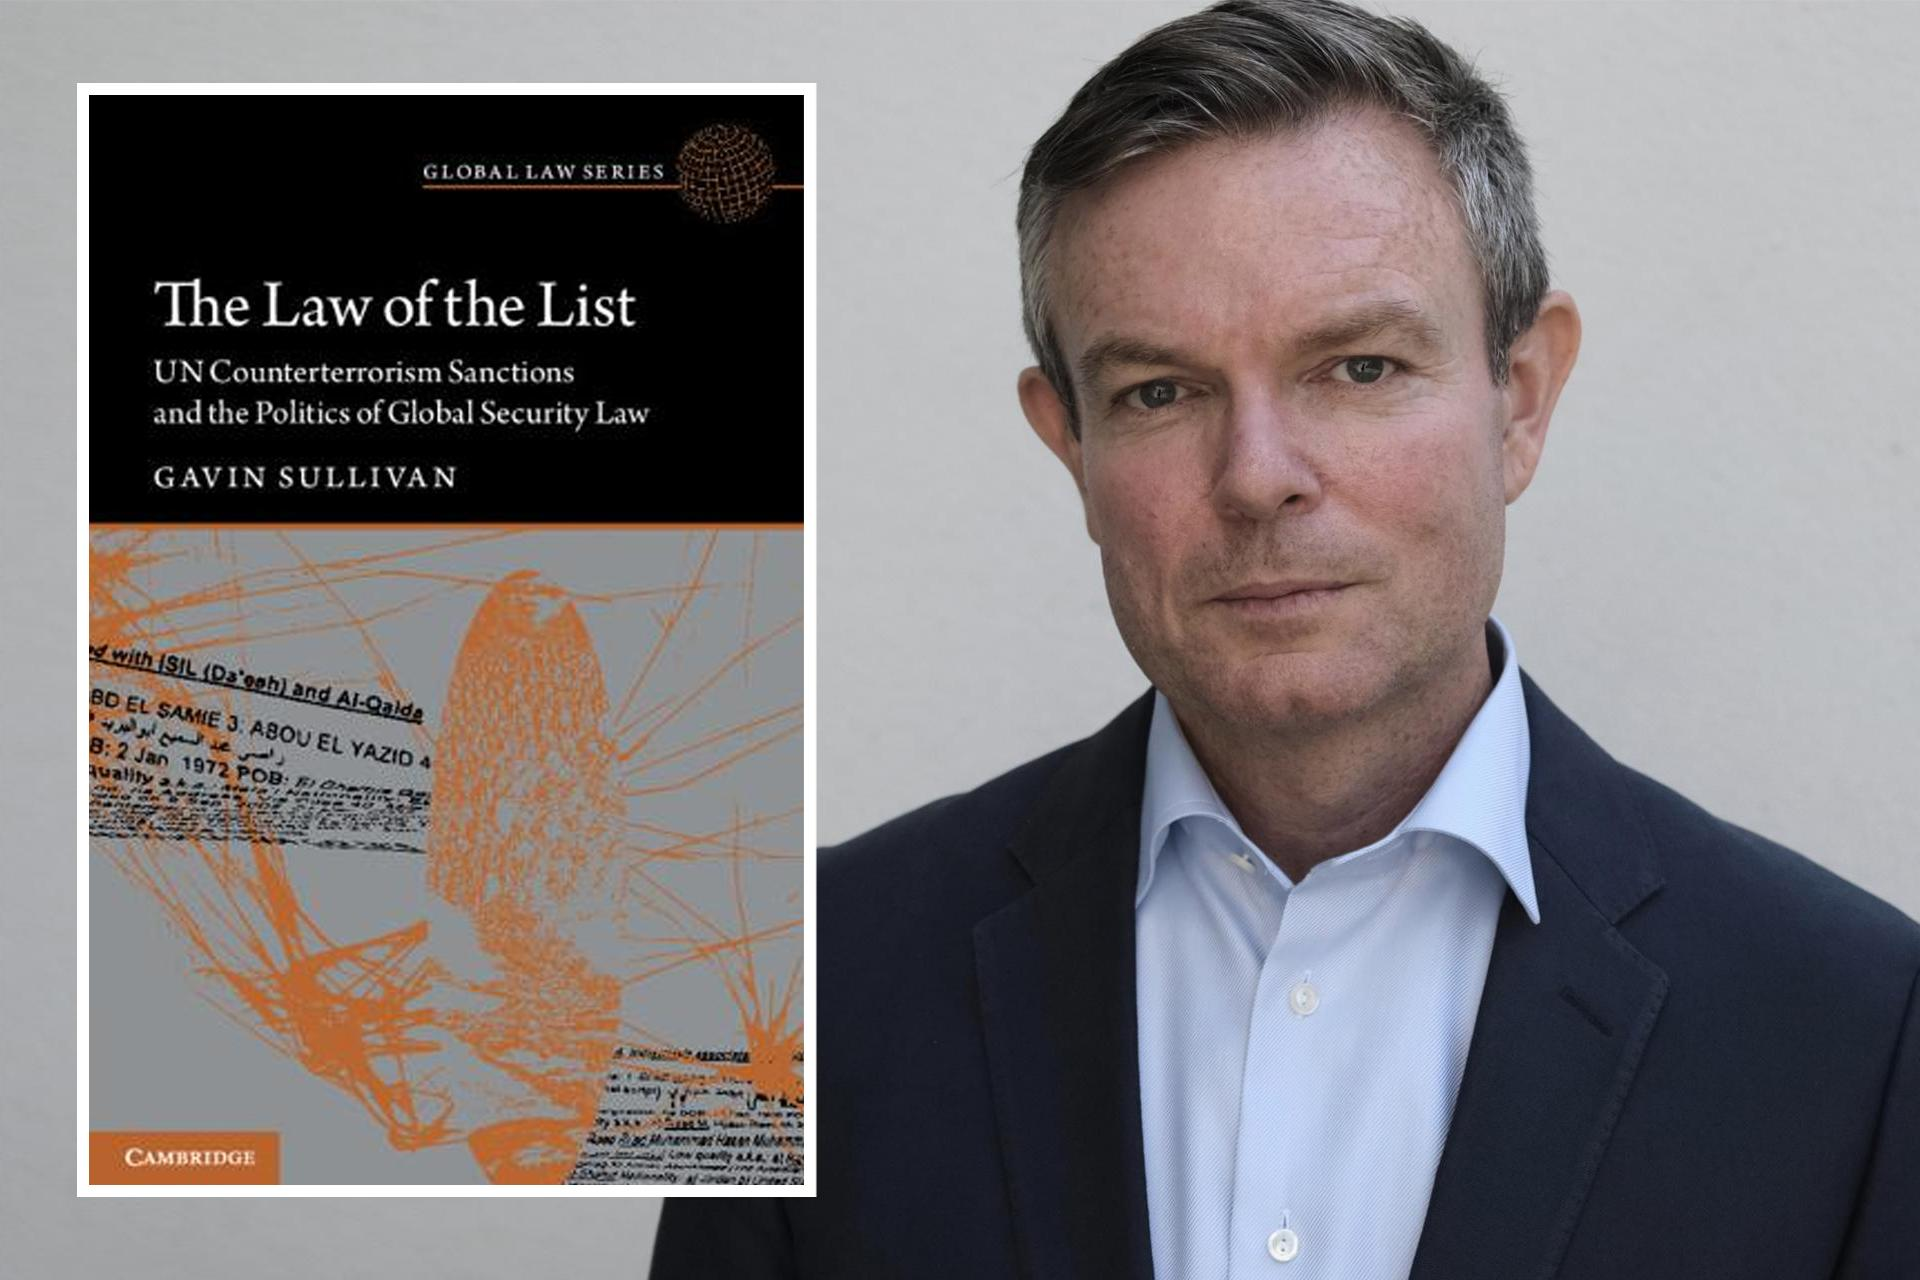 Dr Gavin Sullivan's book The Law of the List